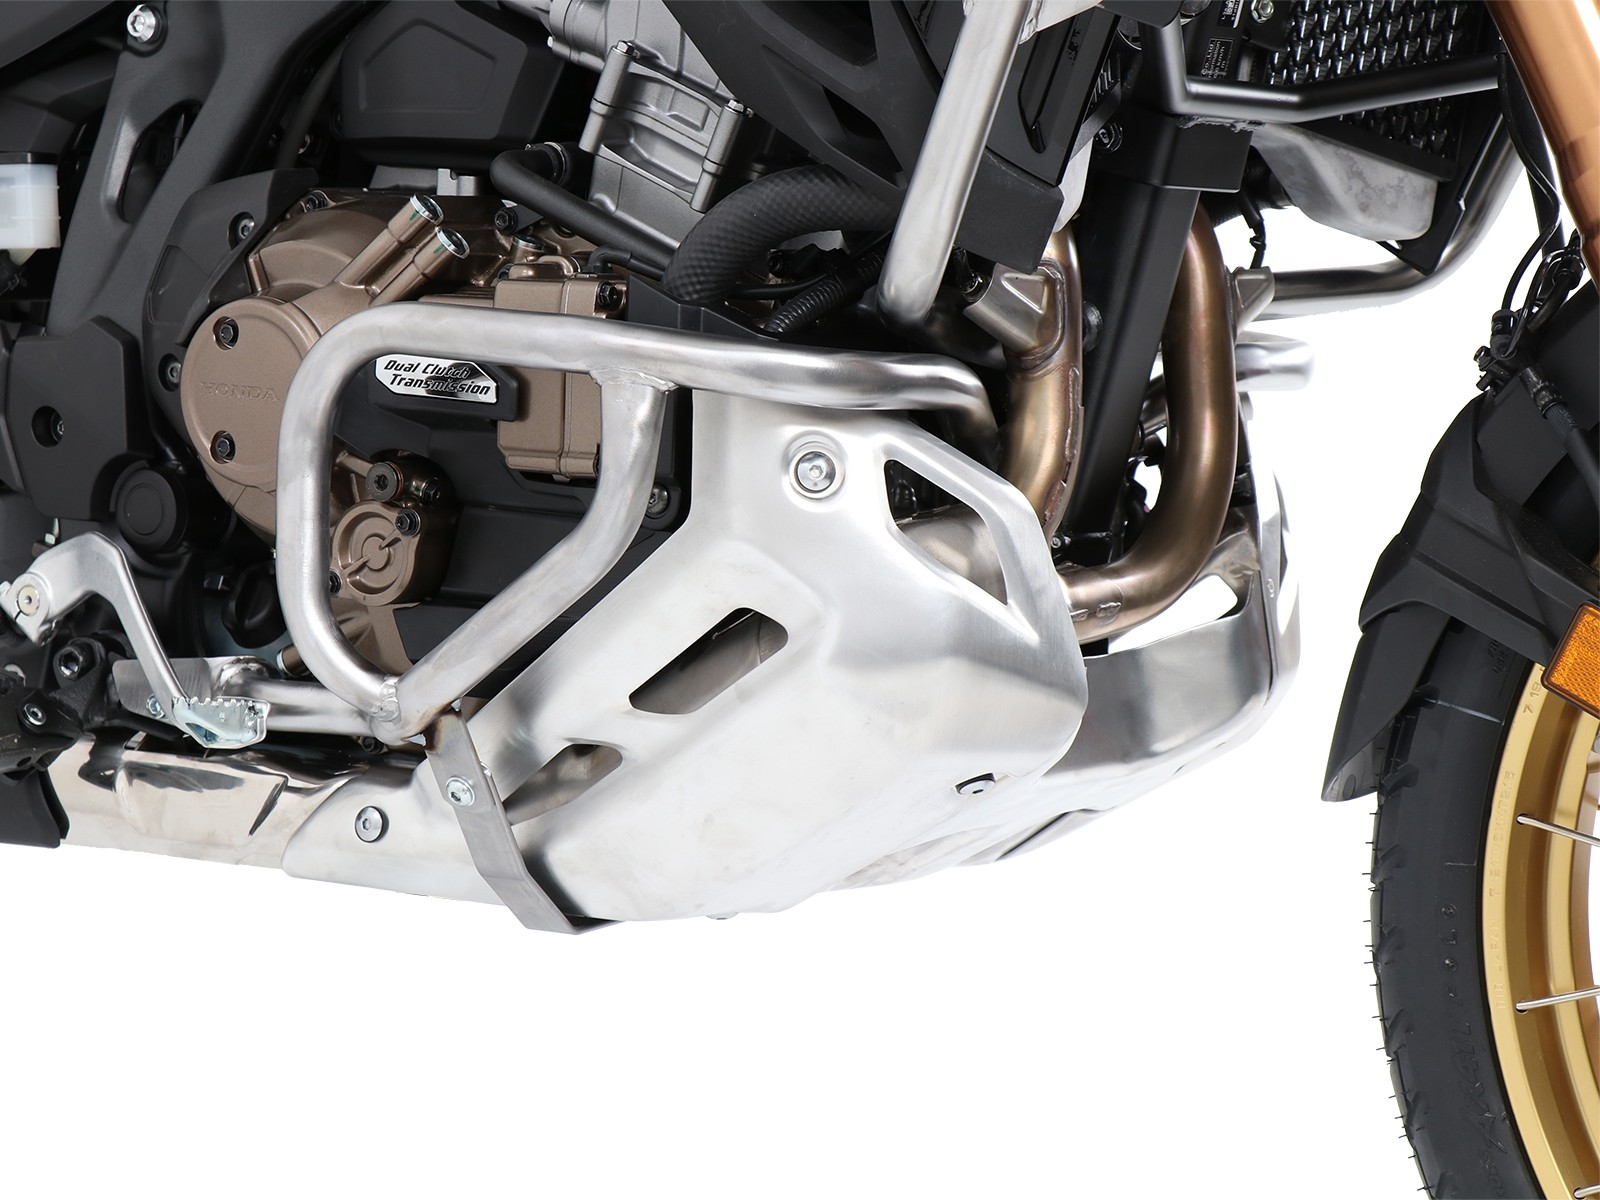 PROTECT & SAVE PACKAGE!! Hepco Honda CRF 1100 L Africa Twin Adventure Sport 2020